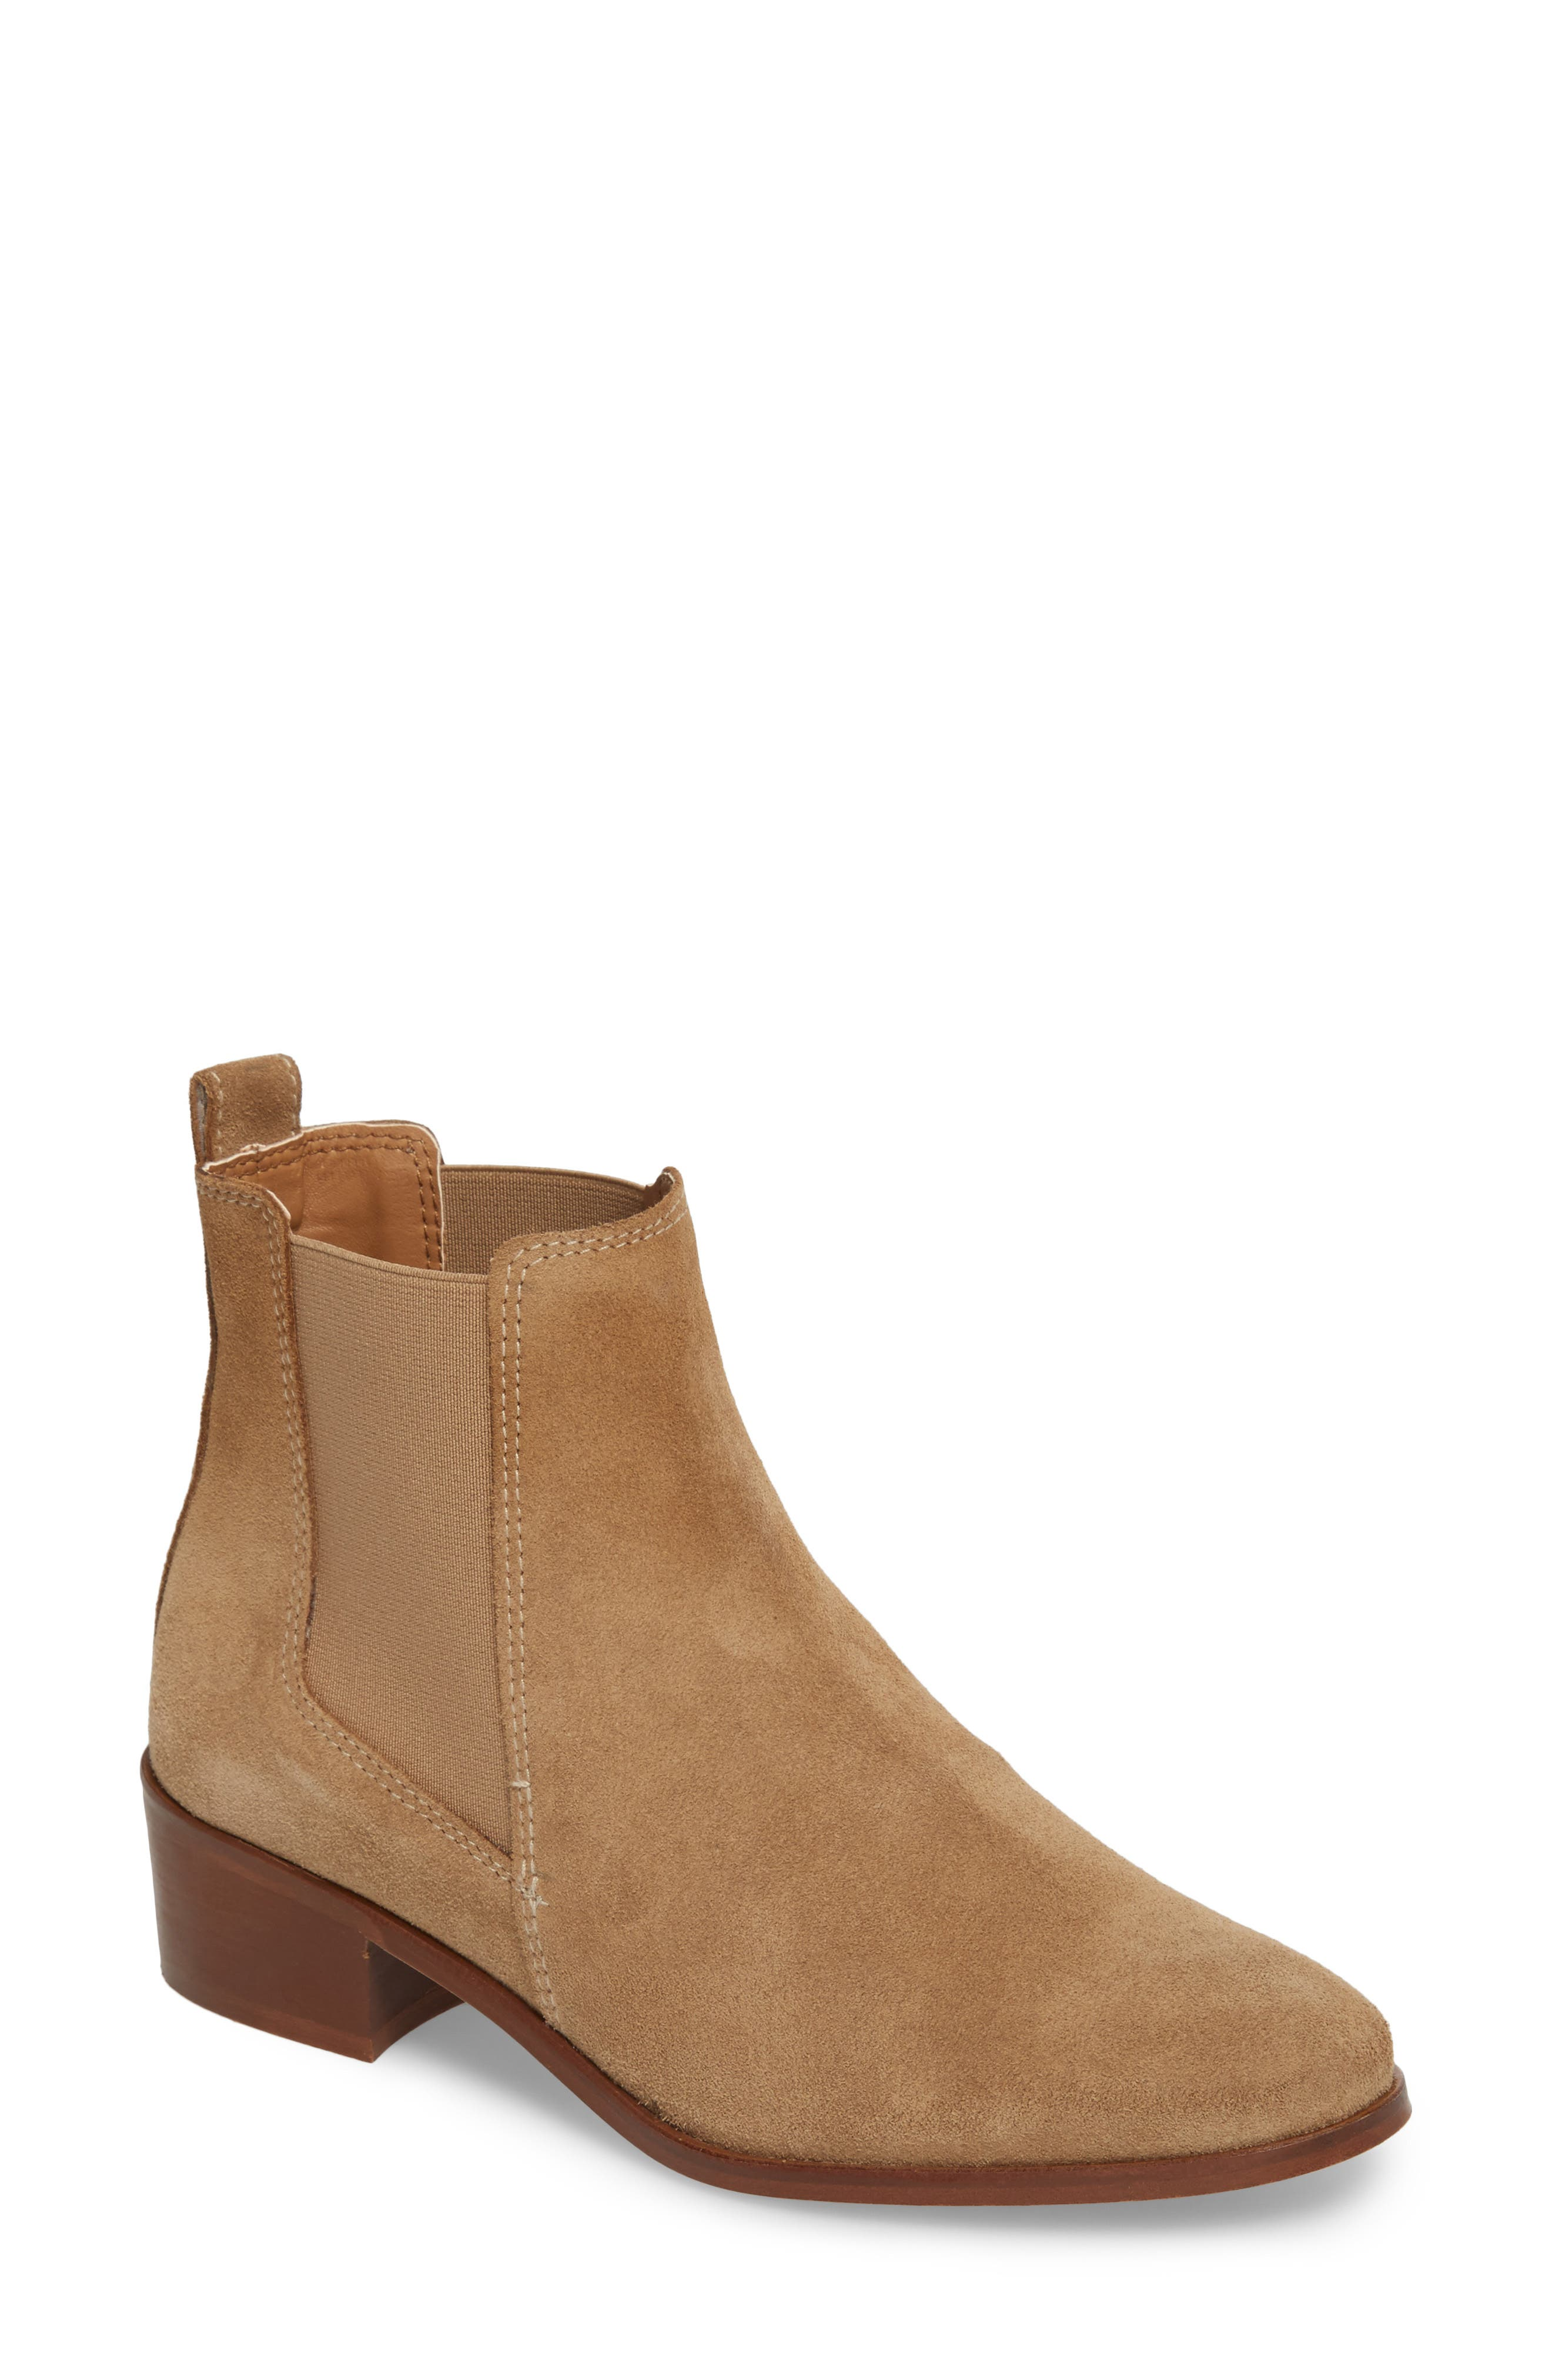 Dover Chelsea Bootie,                         Main,                         color, Taupe Suede